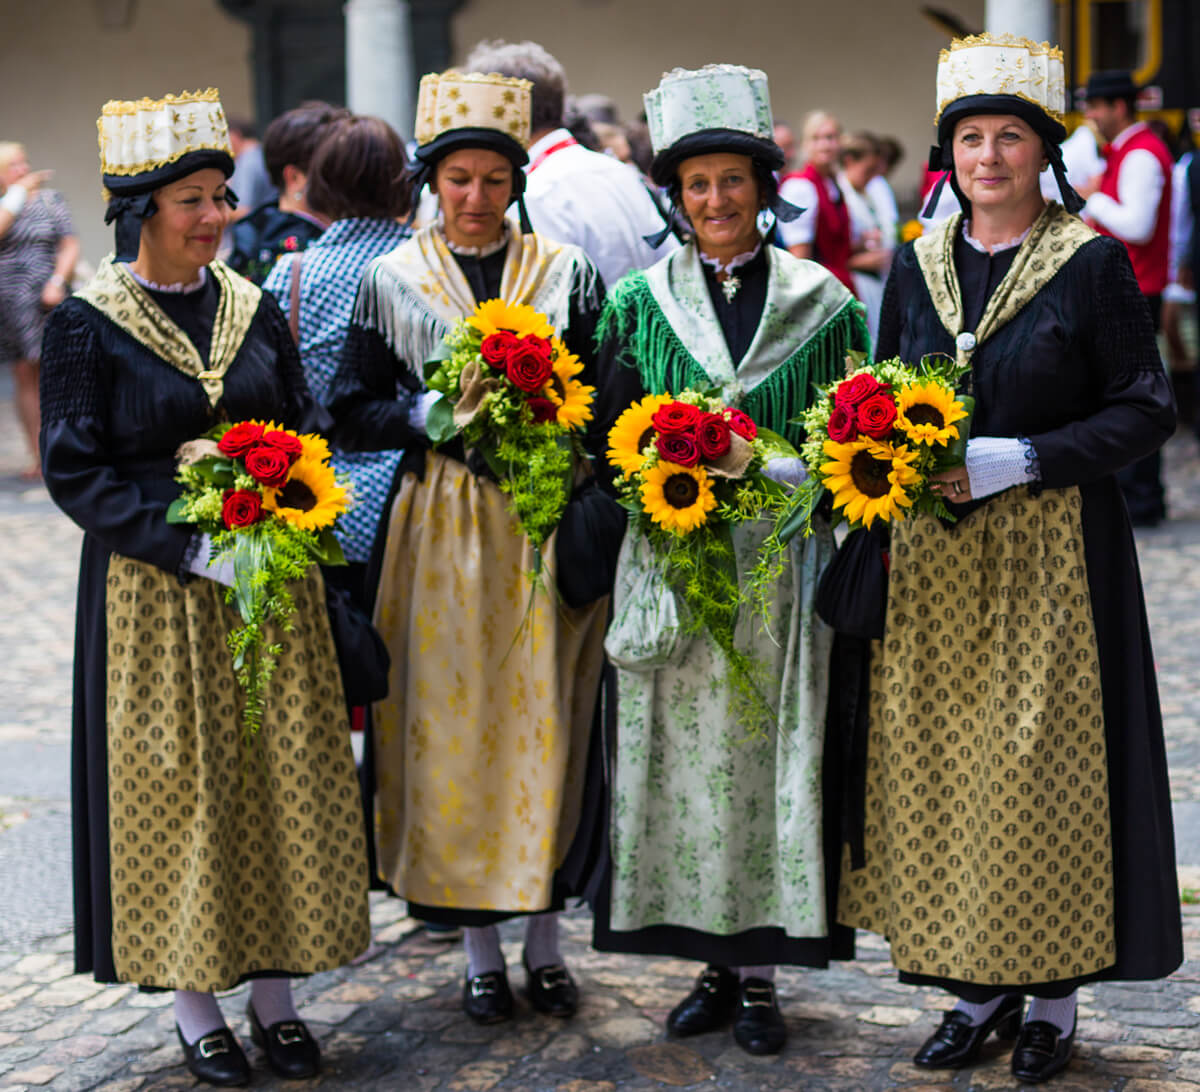 Swiss National Jodlerfest 2017